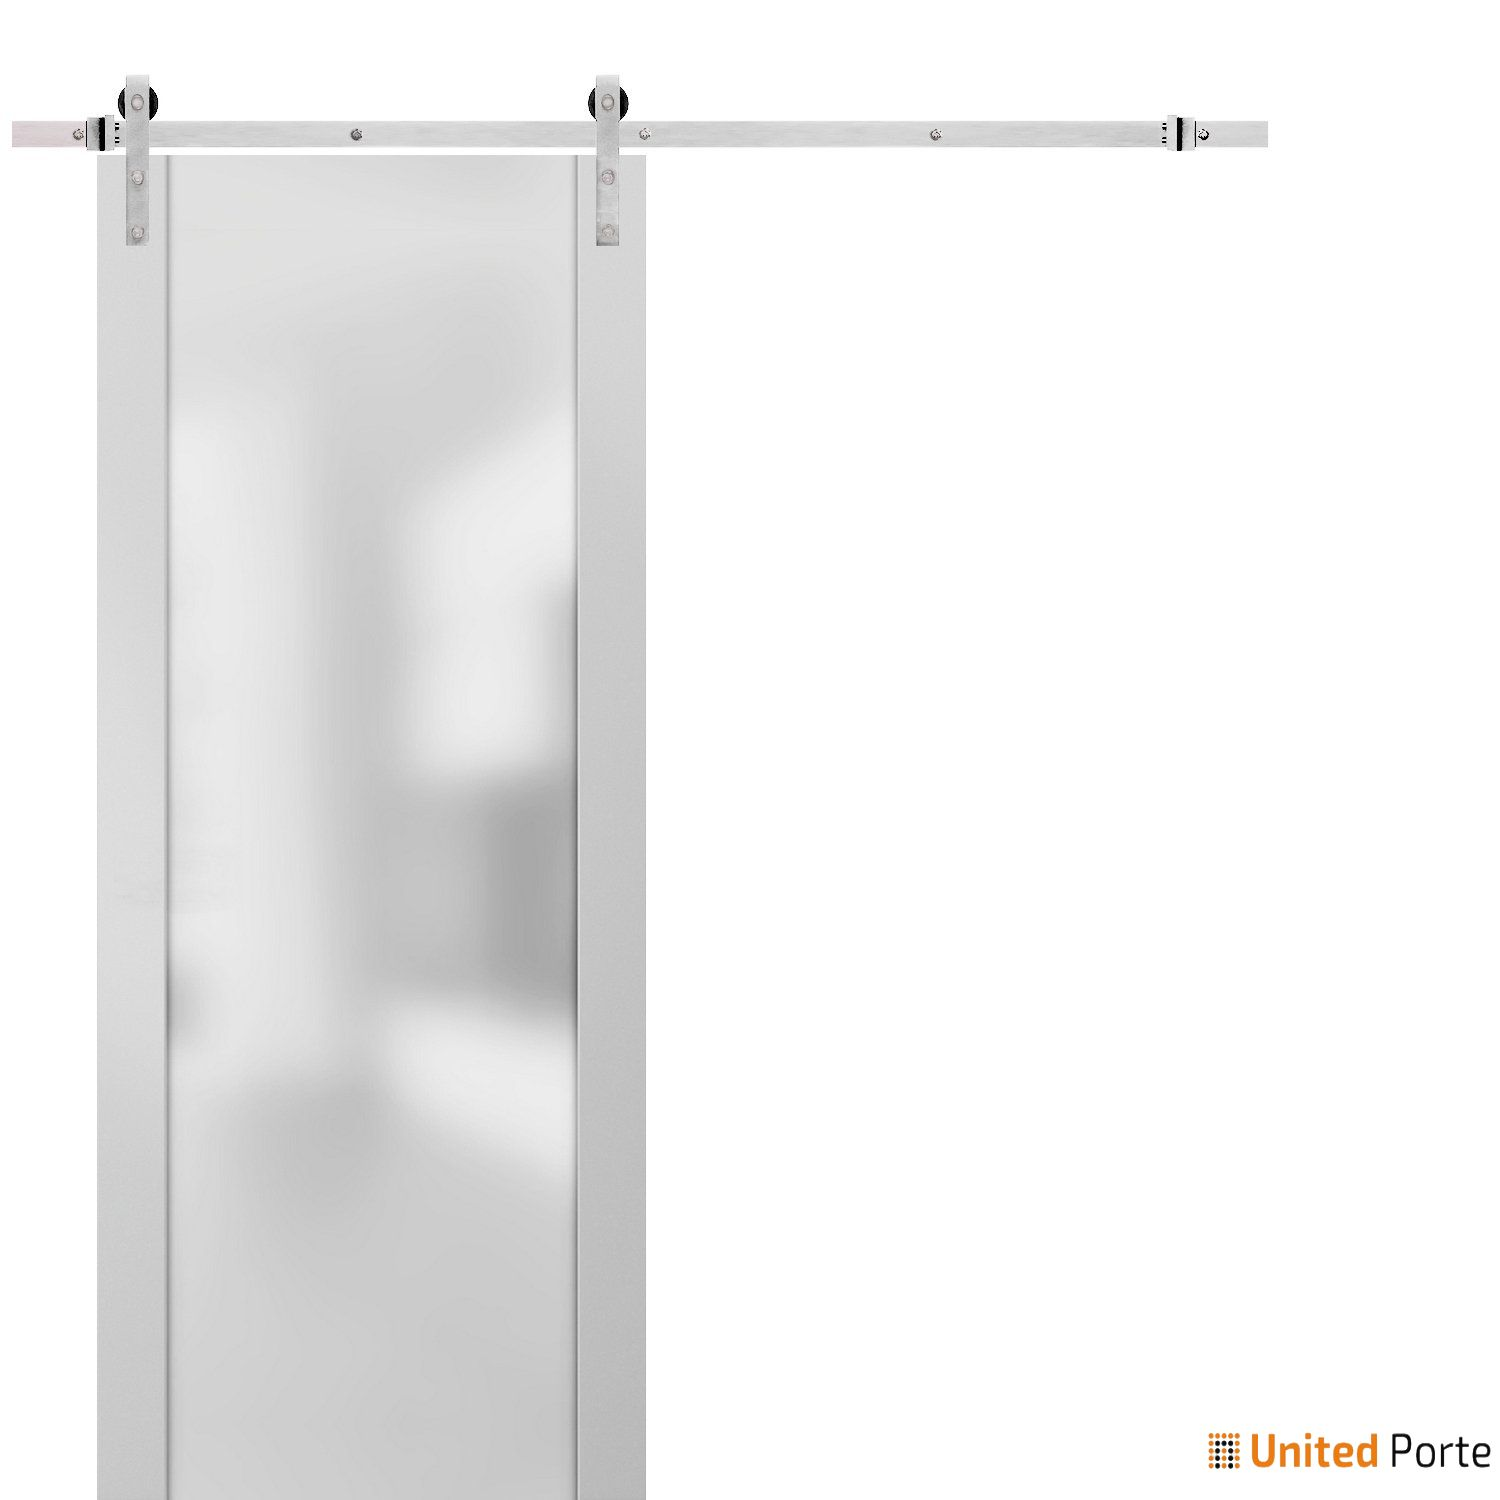 Planum 4114 White Silk Sturdy Barn Door Frosted Tempered Glass with Stainless Hardware   Modern Solid Panel Interior Barn Doors